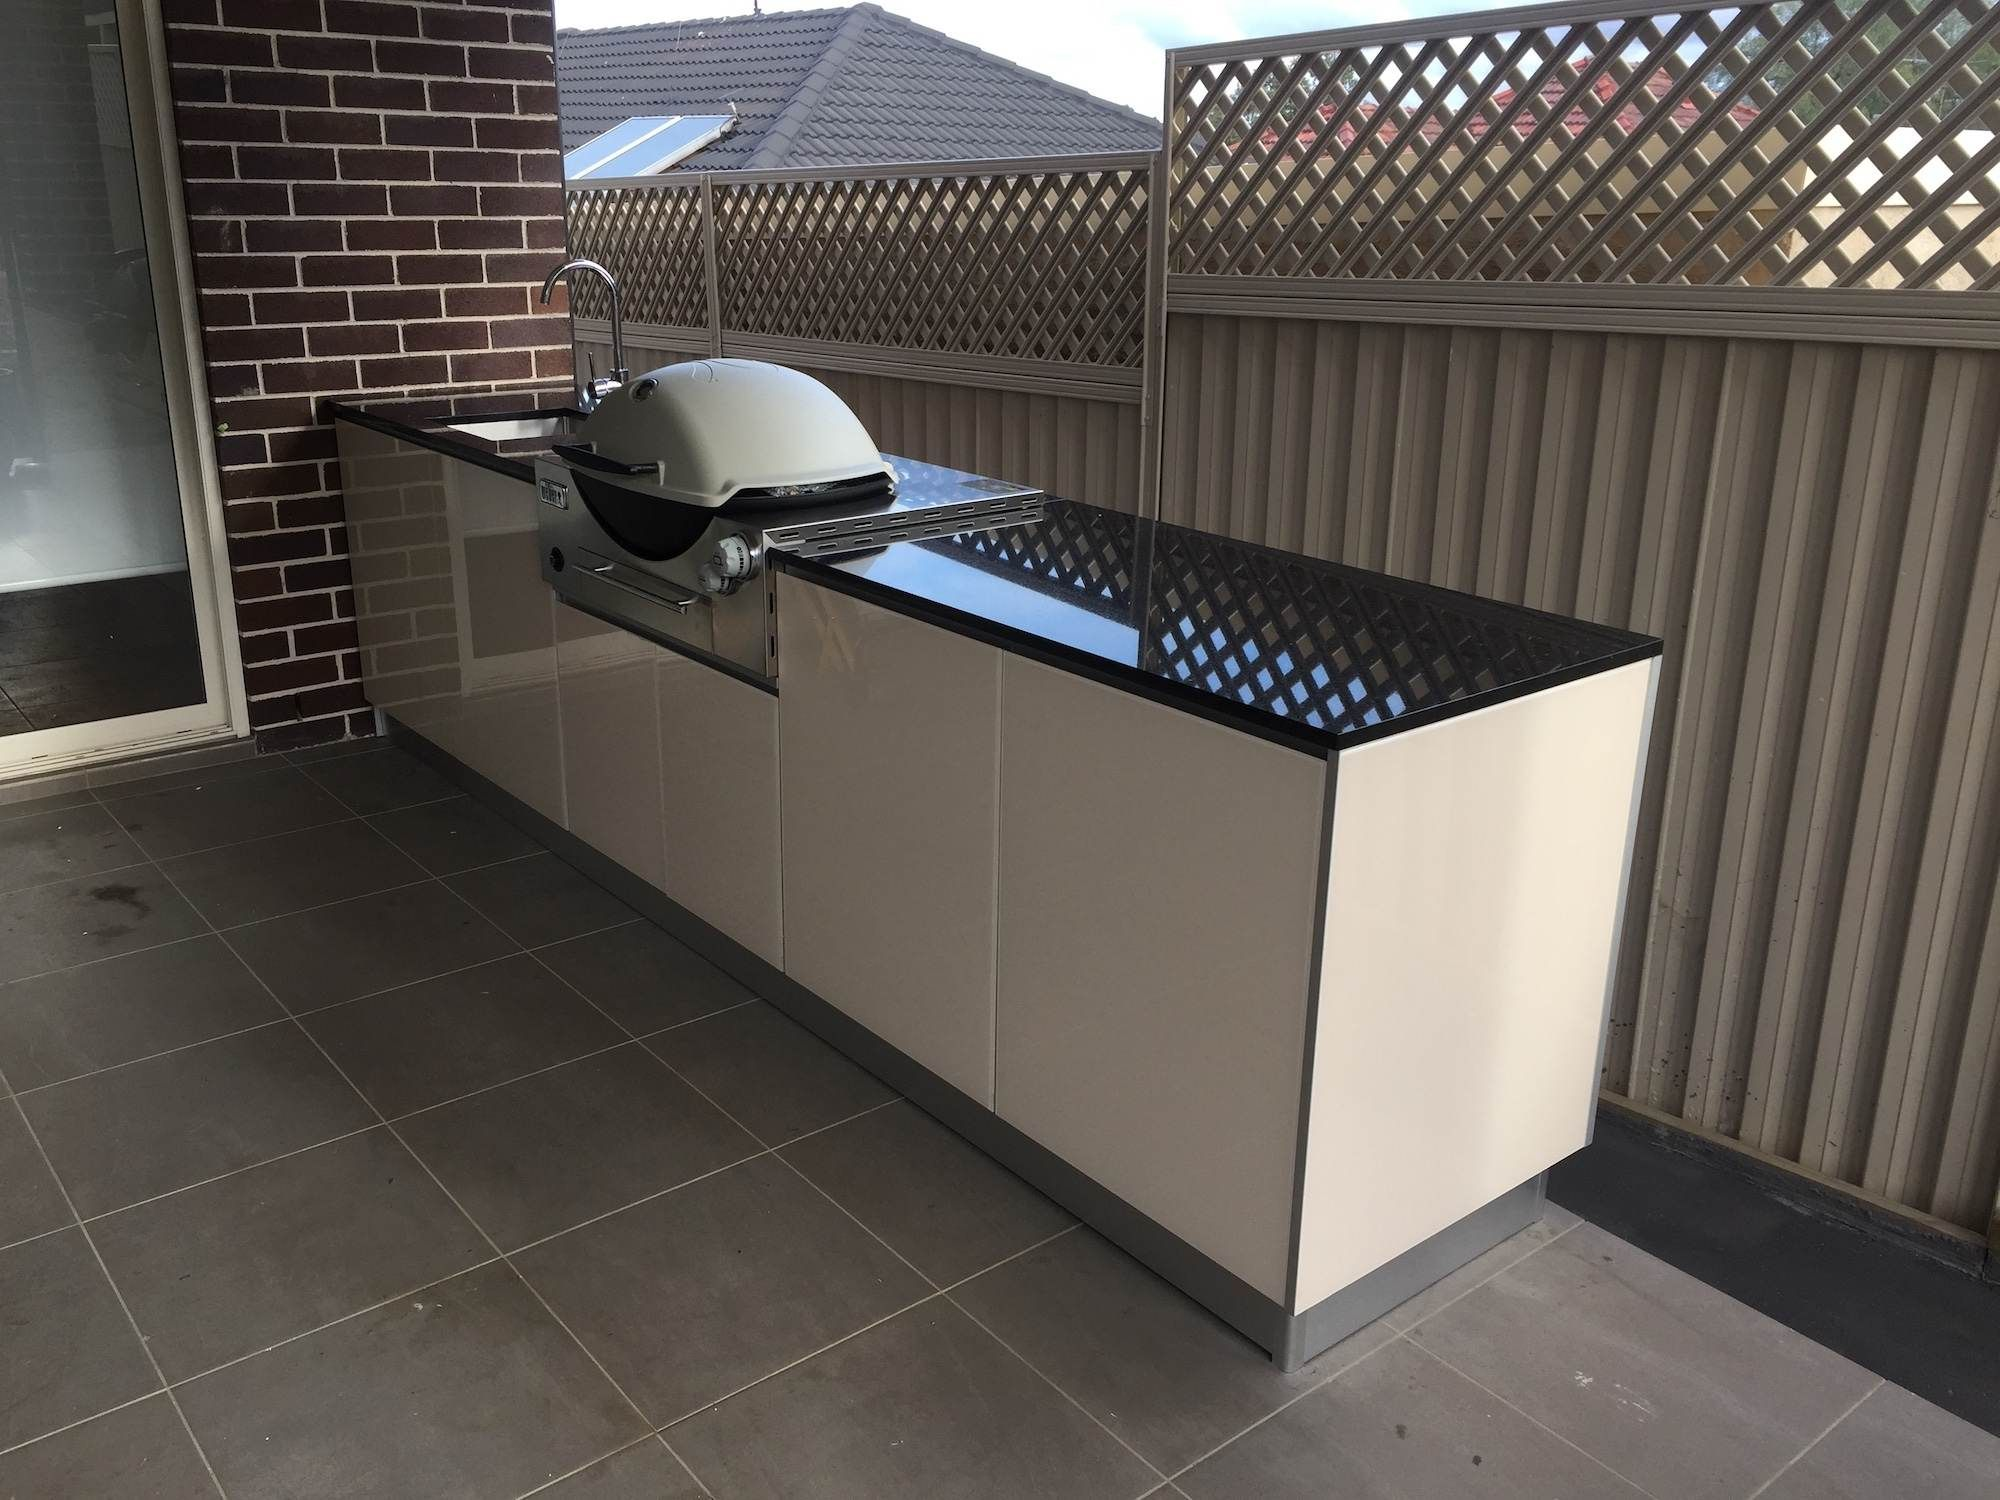 Buy Outdoor Kitchens and Beefeater BBQs and more